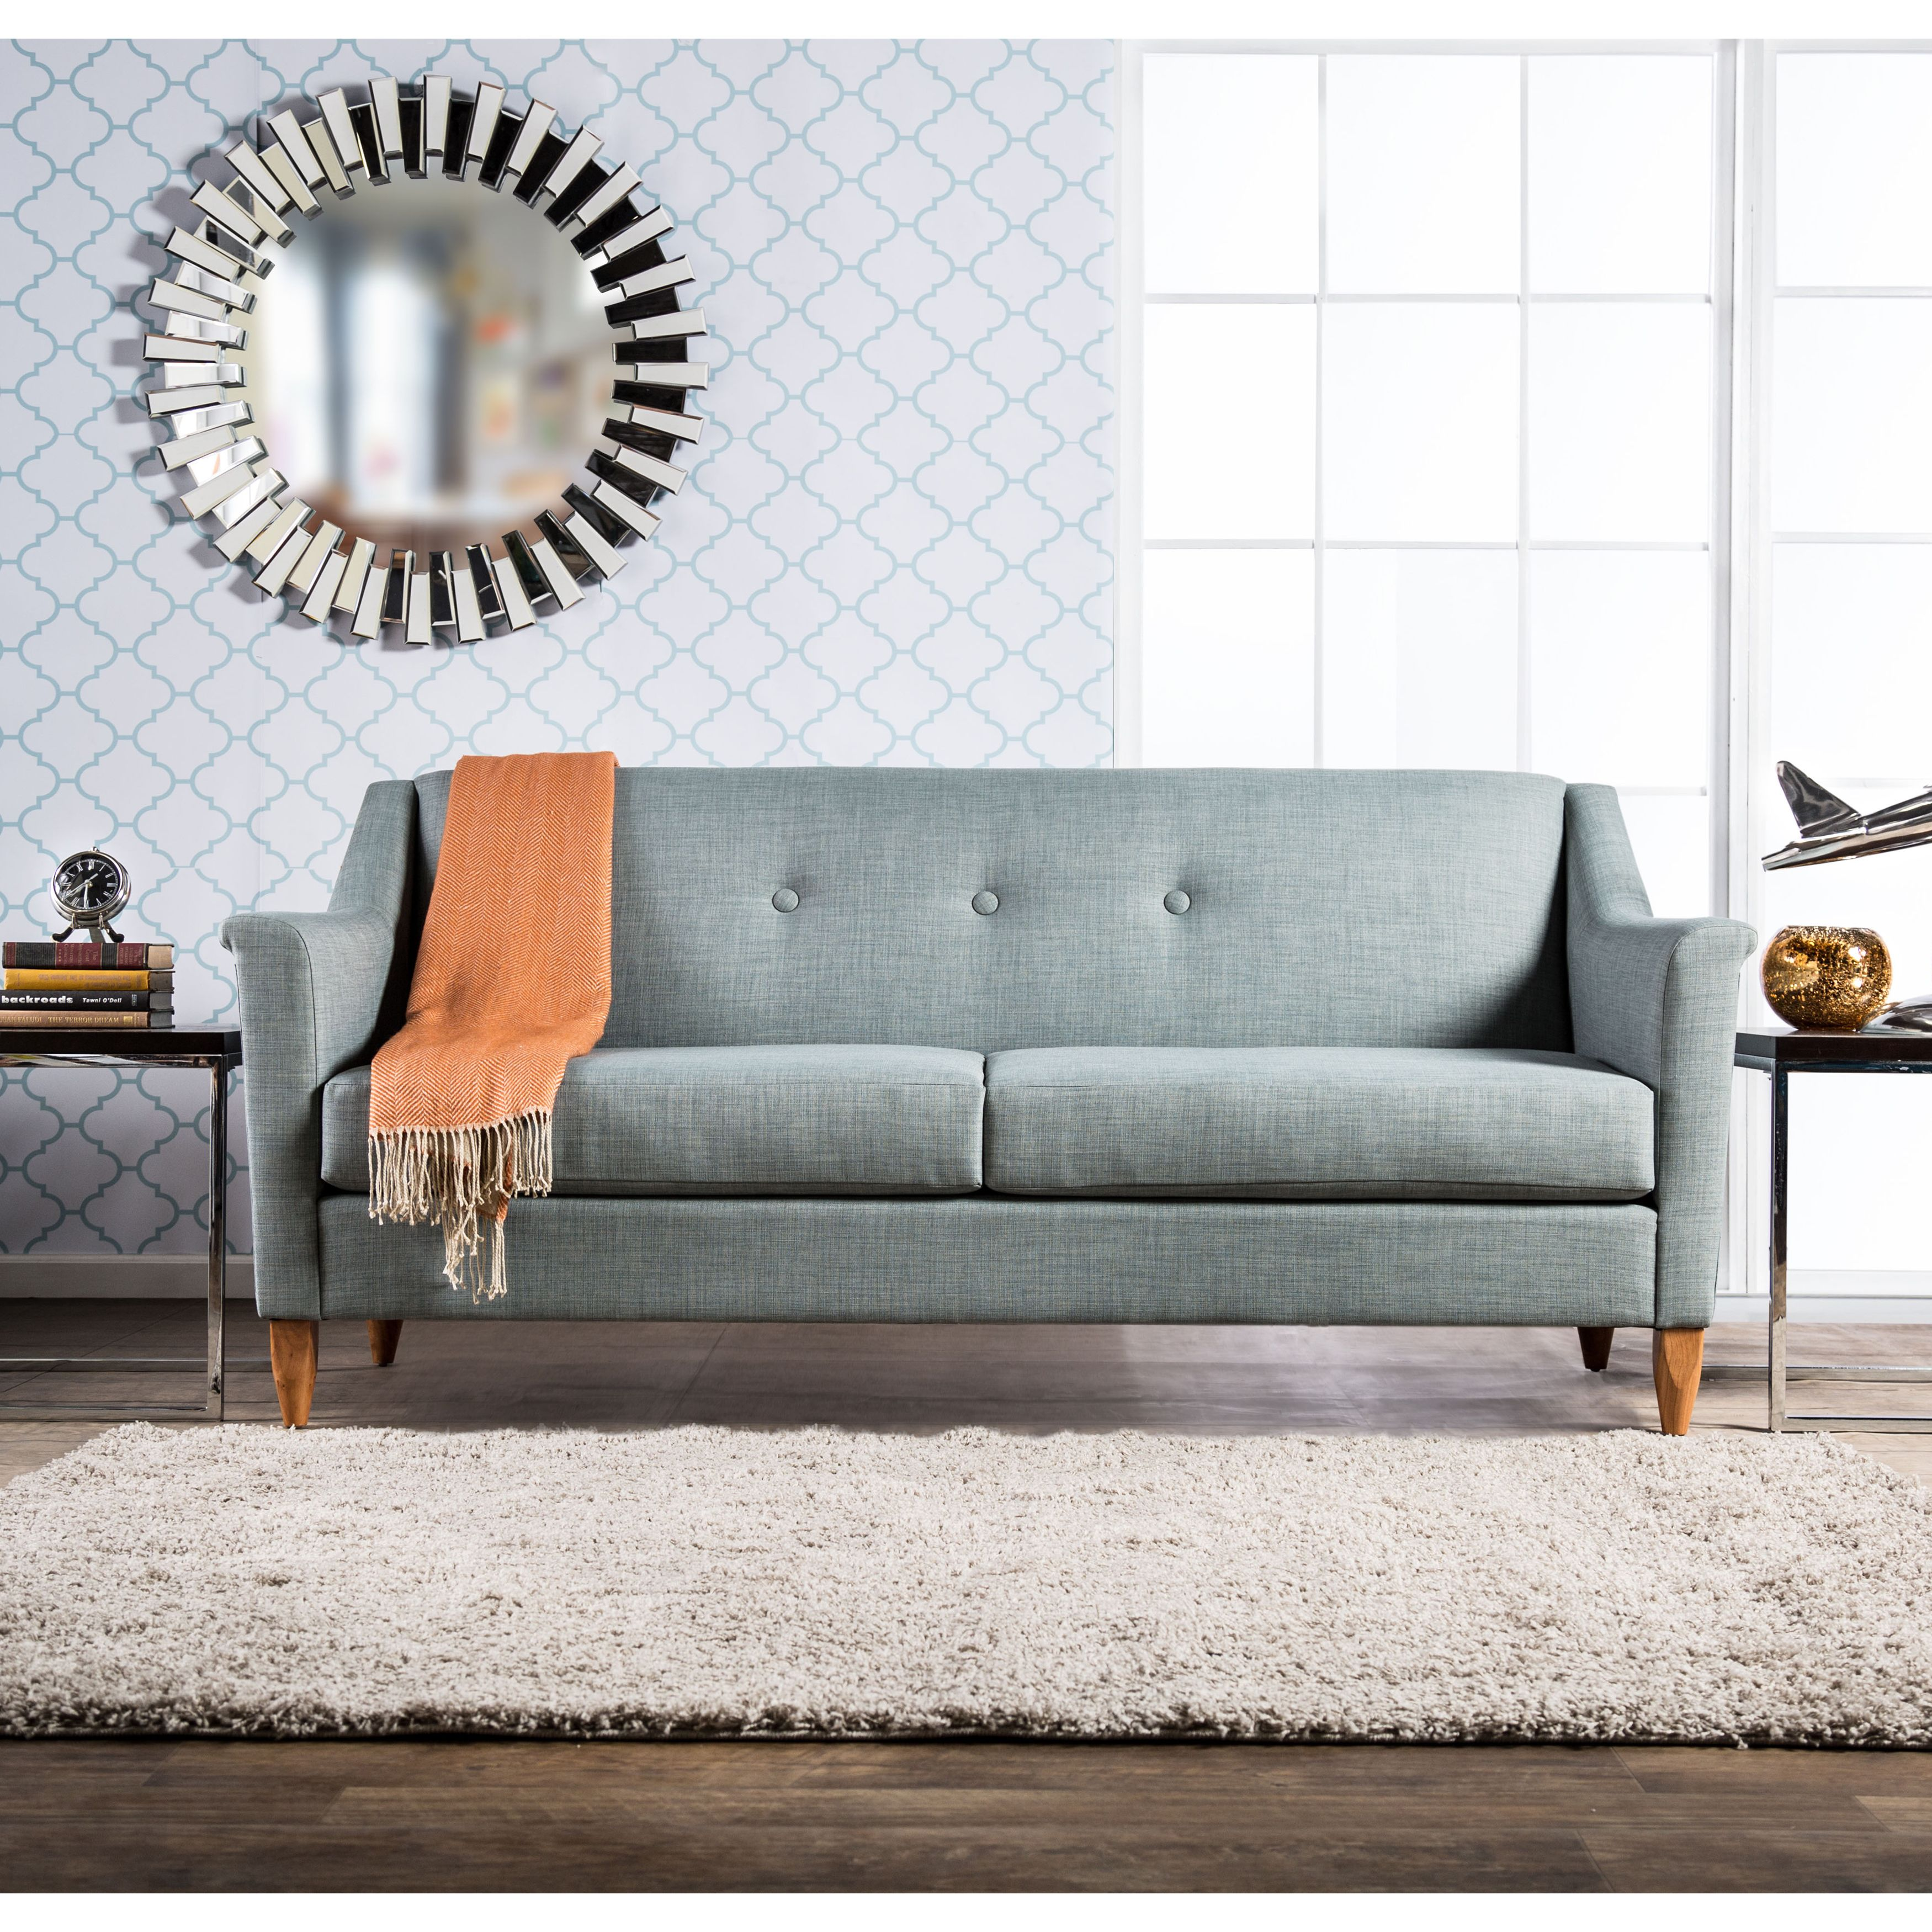 This Flared Modern Sofa Offers Comfort And Style To Fit Any Home Setting Offered In Three Colors The Takes It Back A Few Decades While Smooth